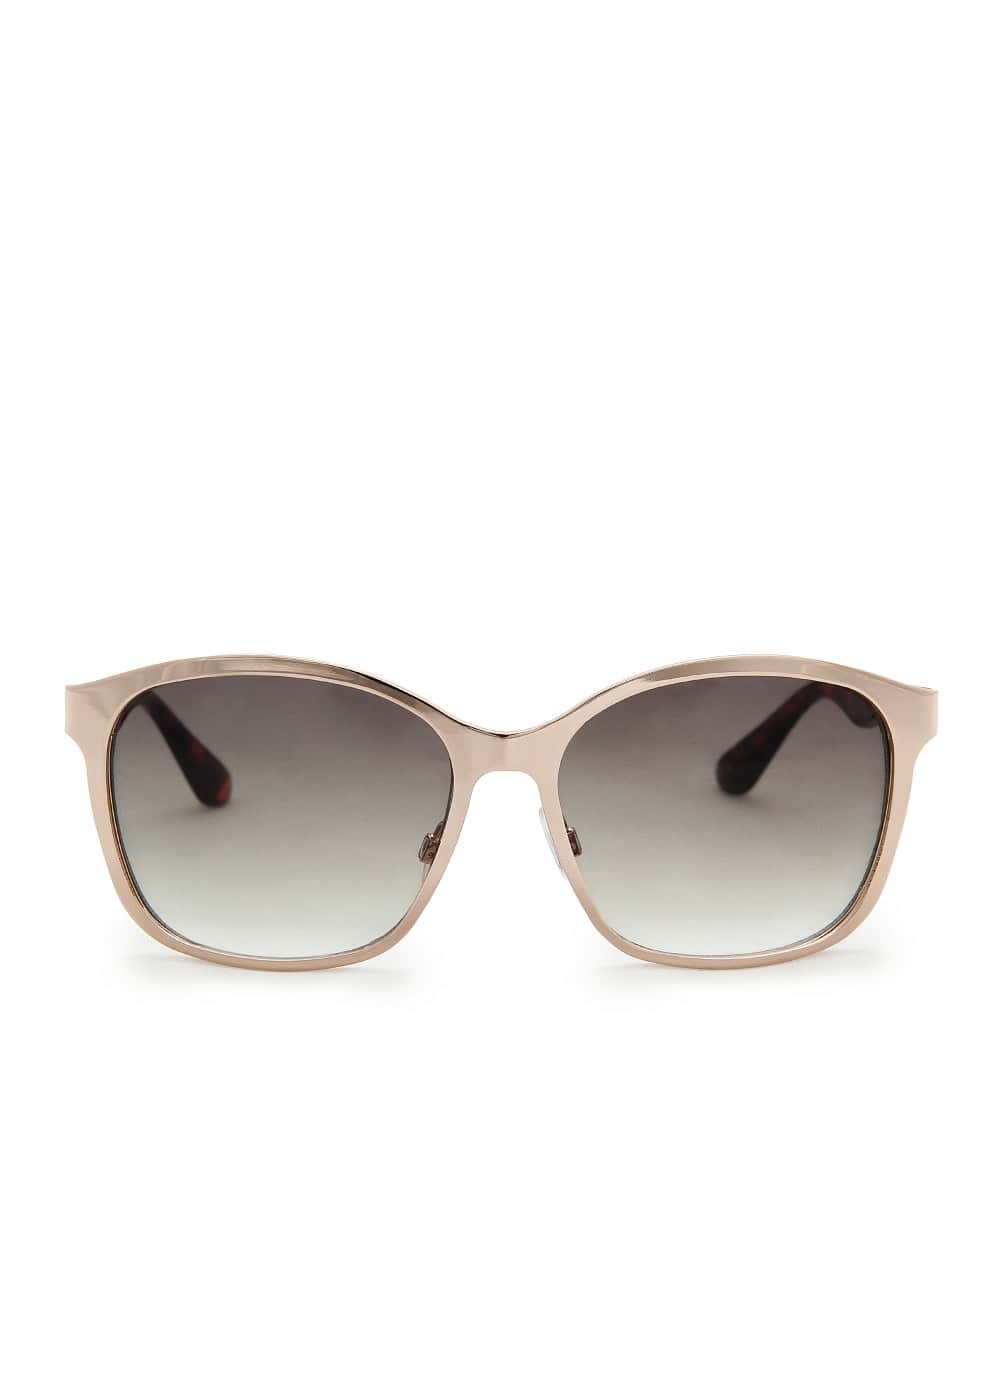 Combi metal sunglasses